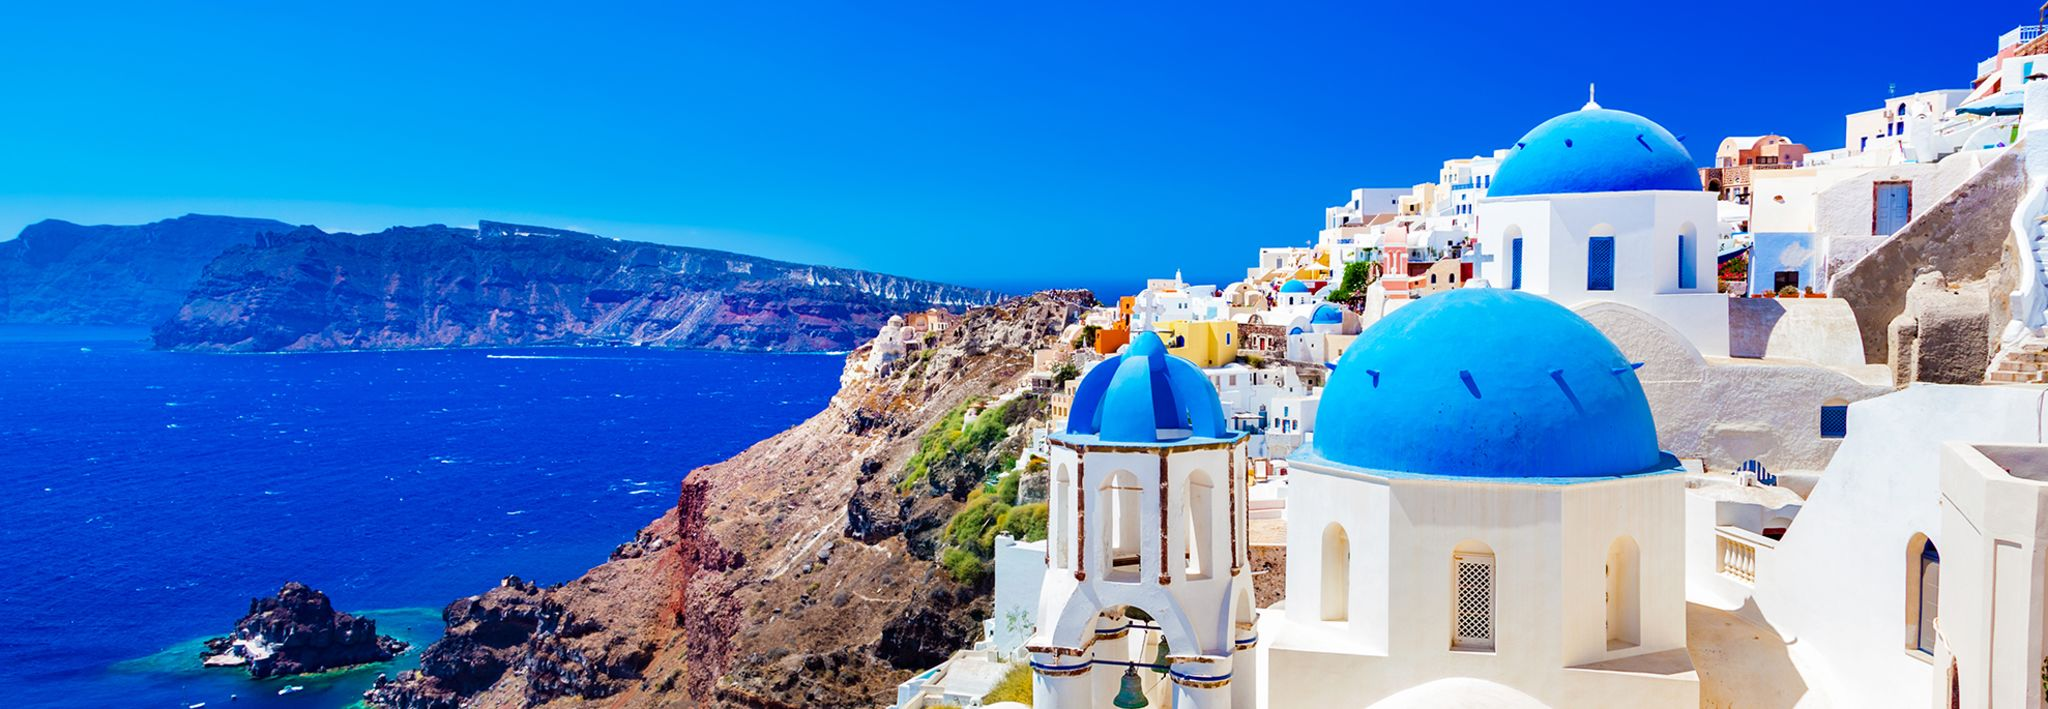 Greece is full of vibrant colors.